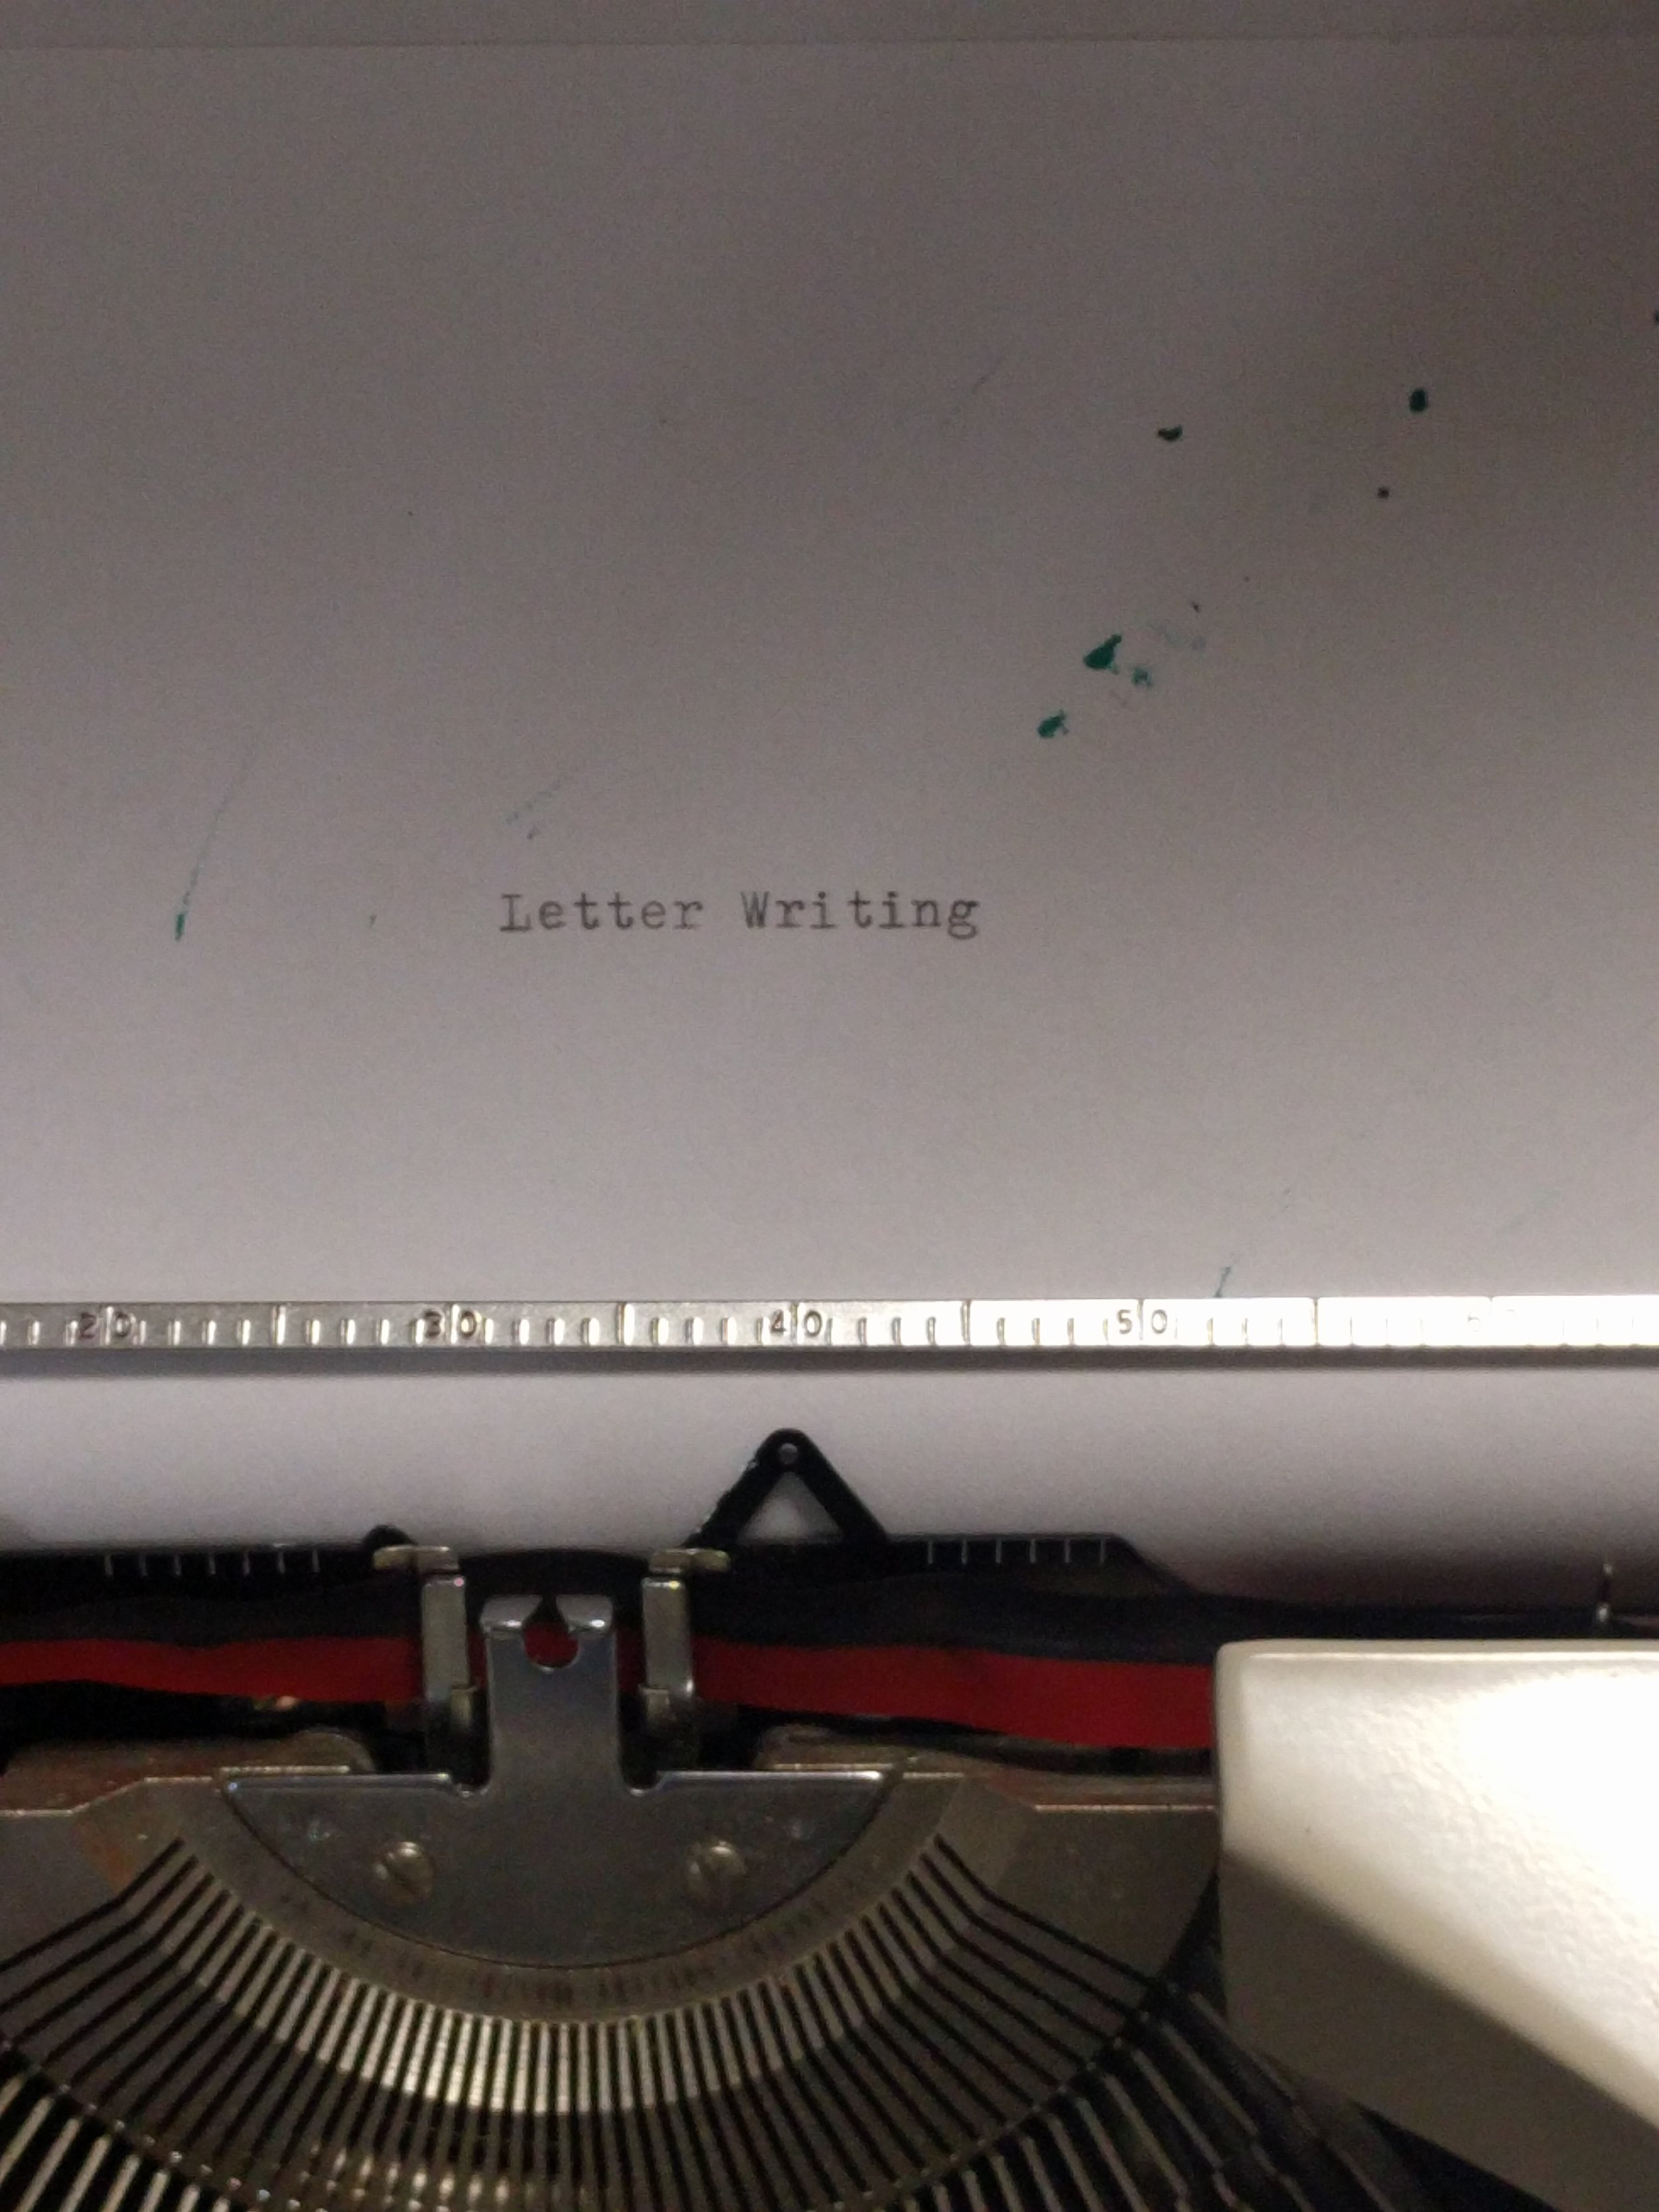 Typewritten letters are available